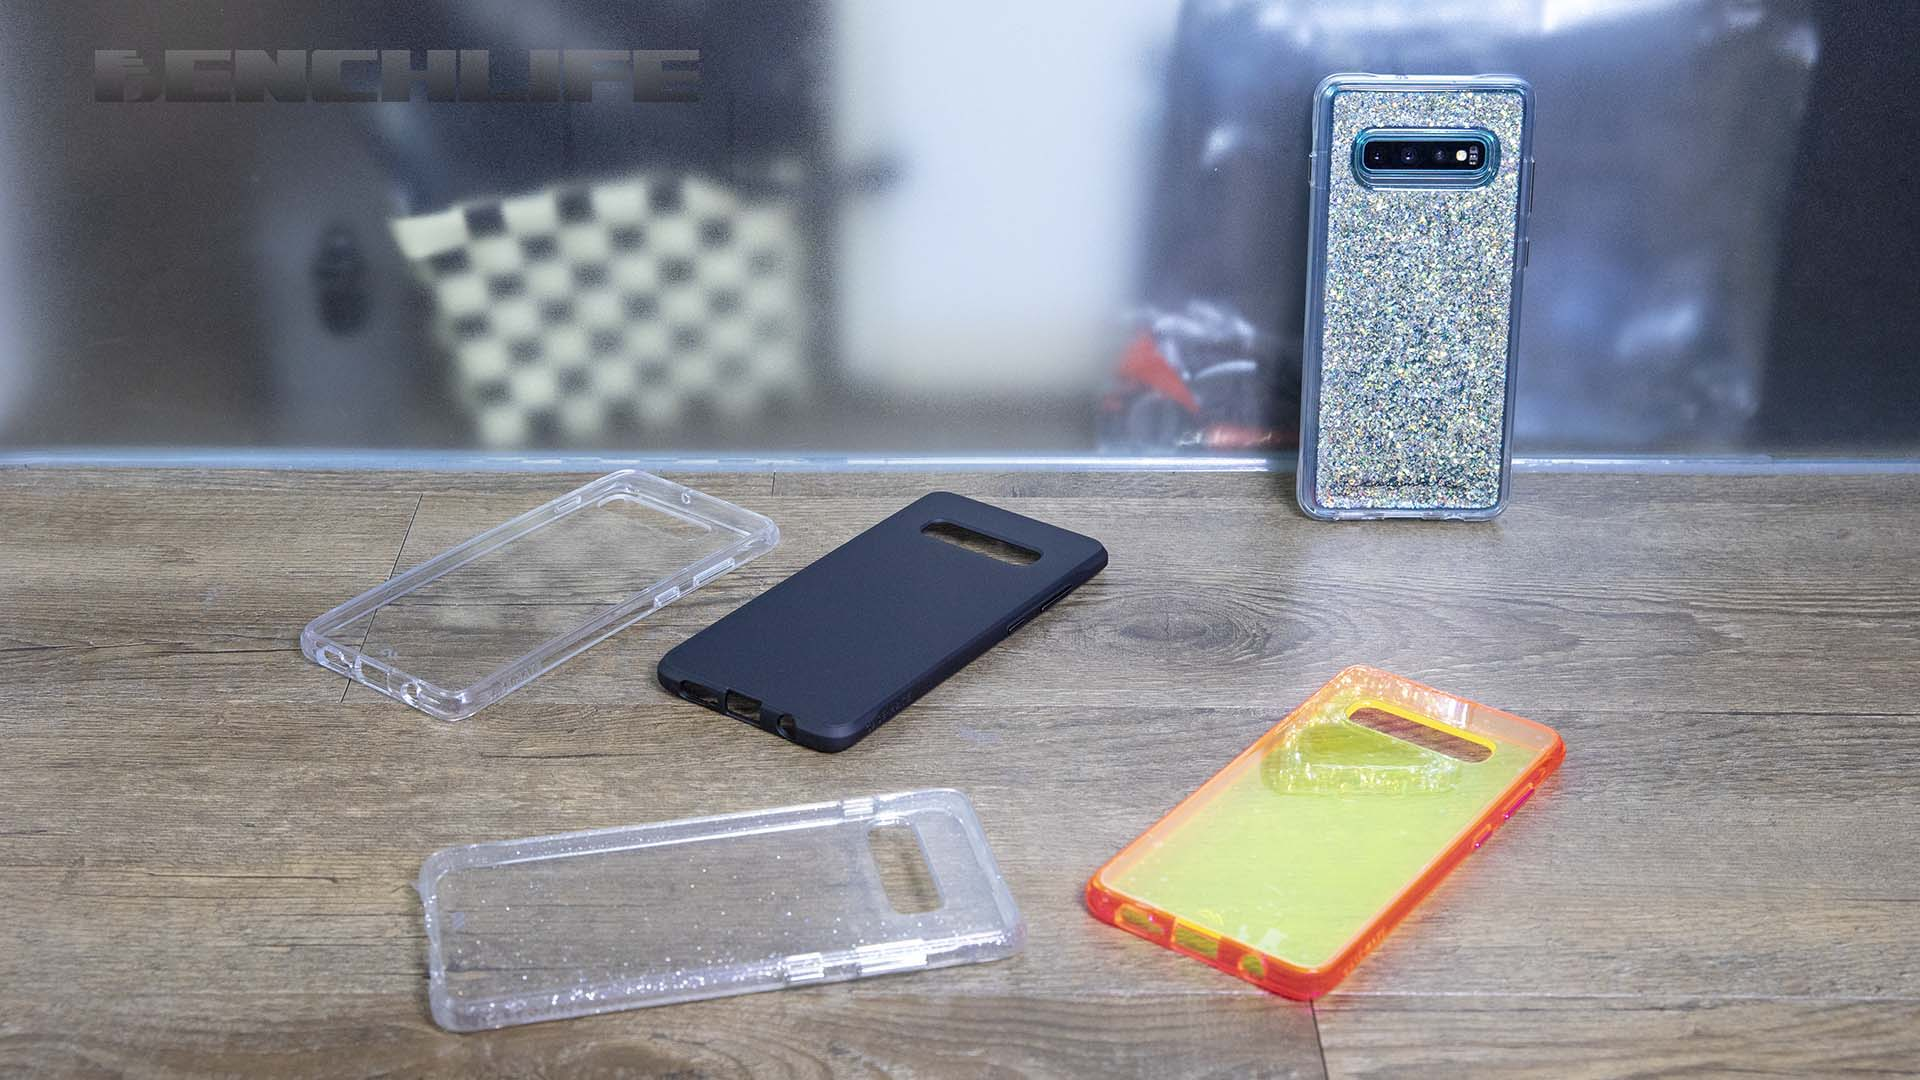 Case-Mate Samsung Galaxy S10+ 用保護殼:Tough Smoke、Clear、Neon、Sheer Crystal 與 Twinkle 動手玩